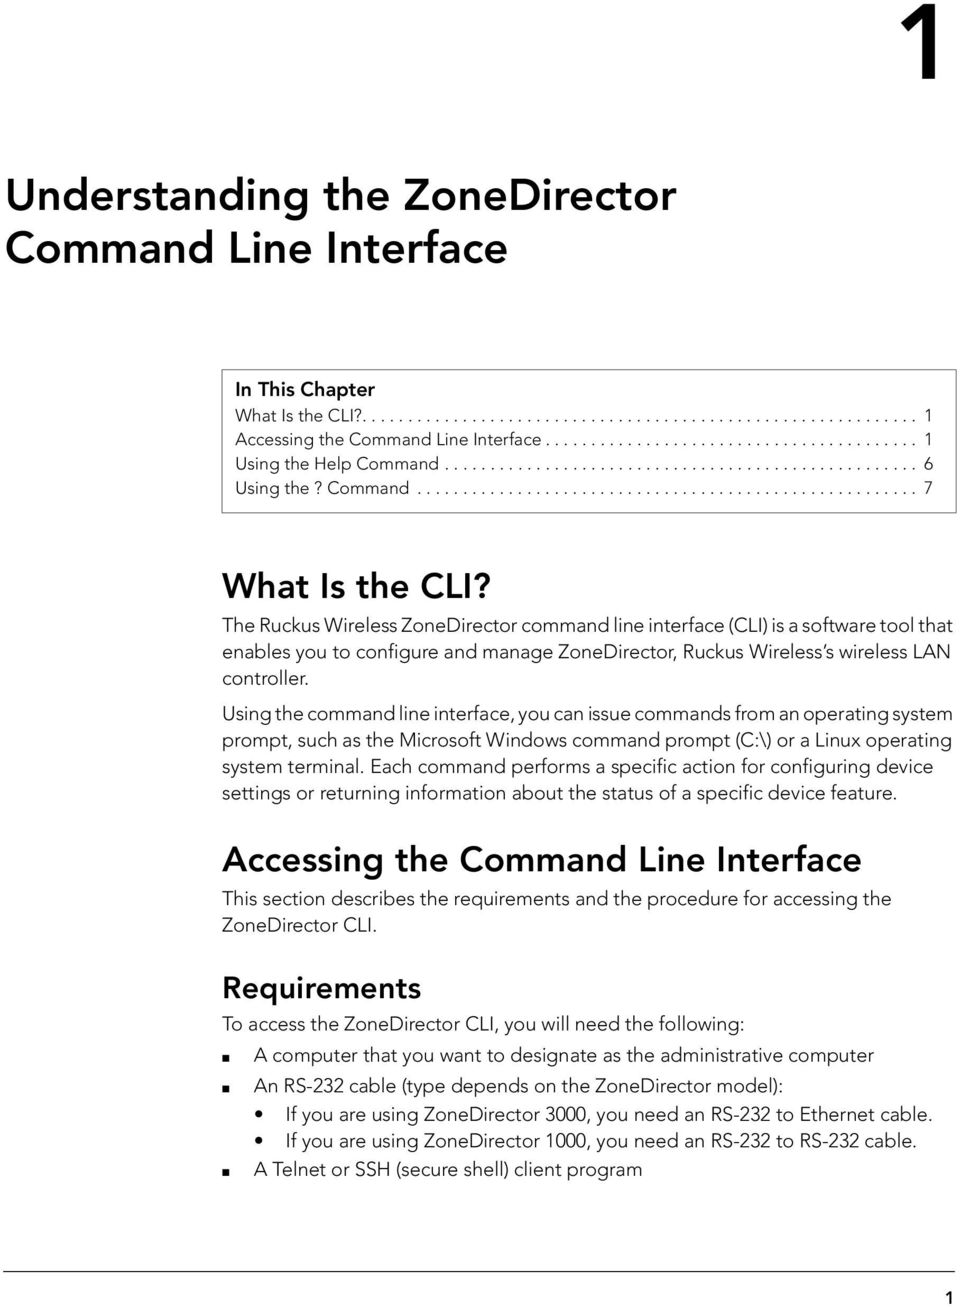 The Ruckus Wireless ZoneDirector command line interface (CLI) is a software tool that enables you to configure and manage ZoneDirector, Ruckus Wireless s wireless LAN controller.